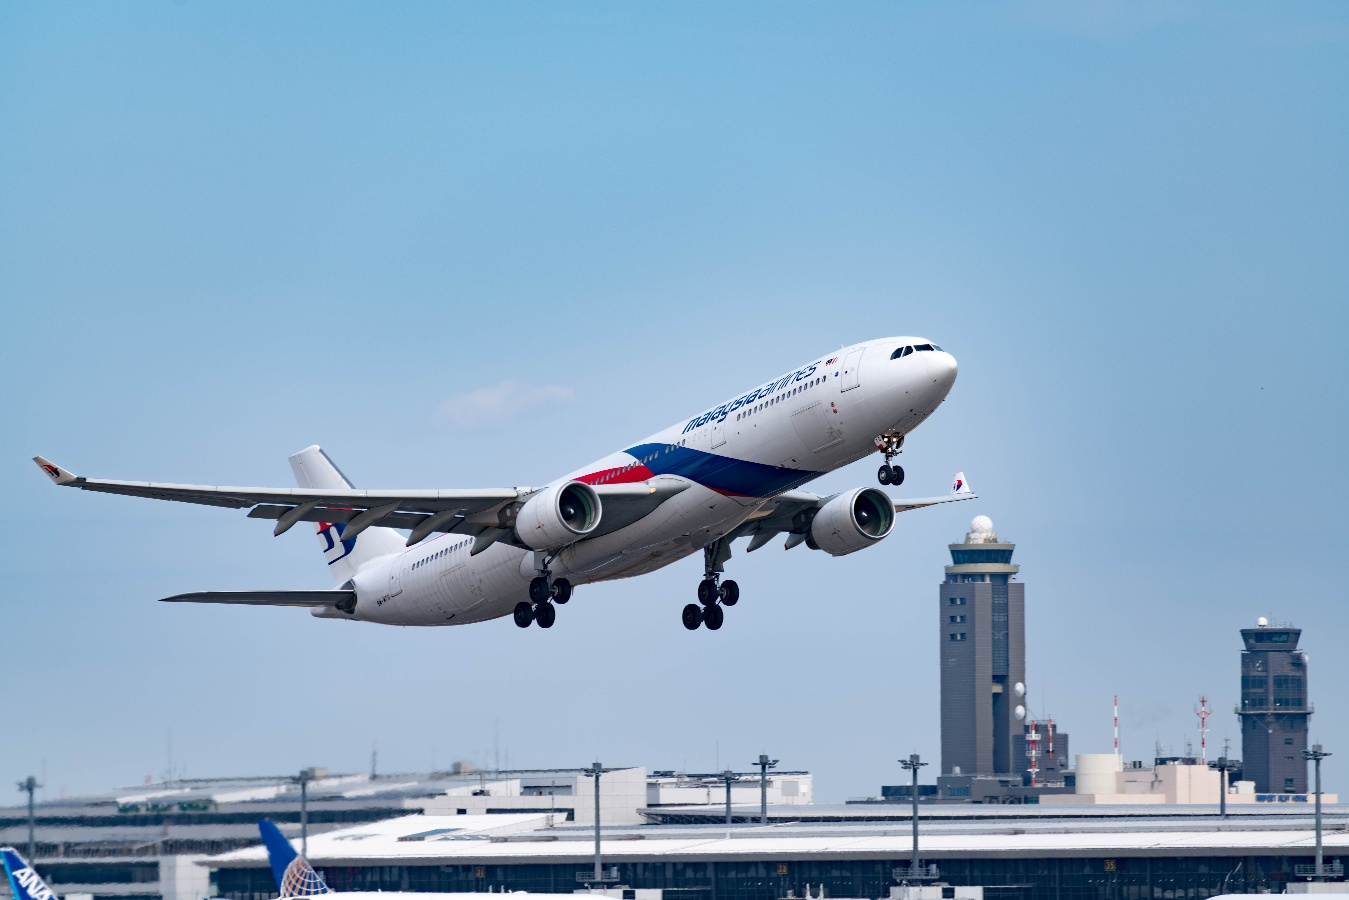 malaysia-airlines-plane-sky-1-1